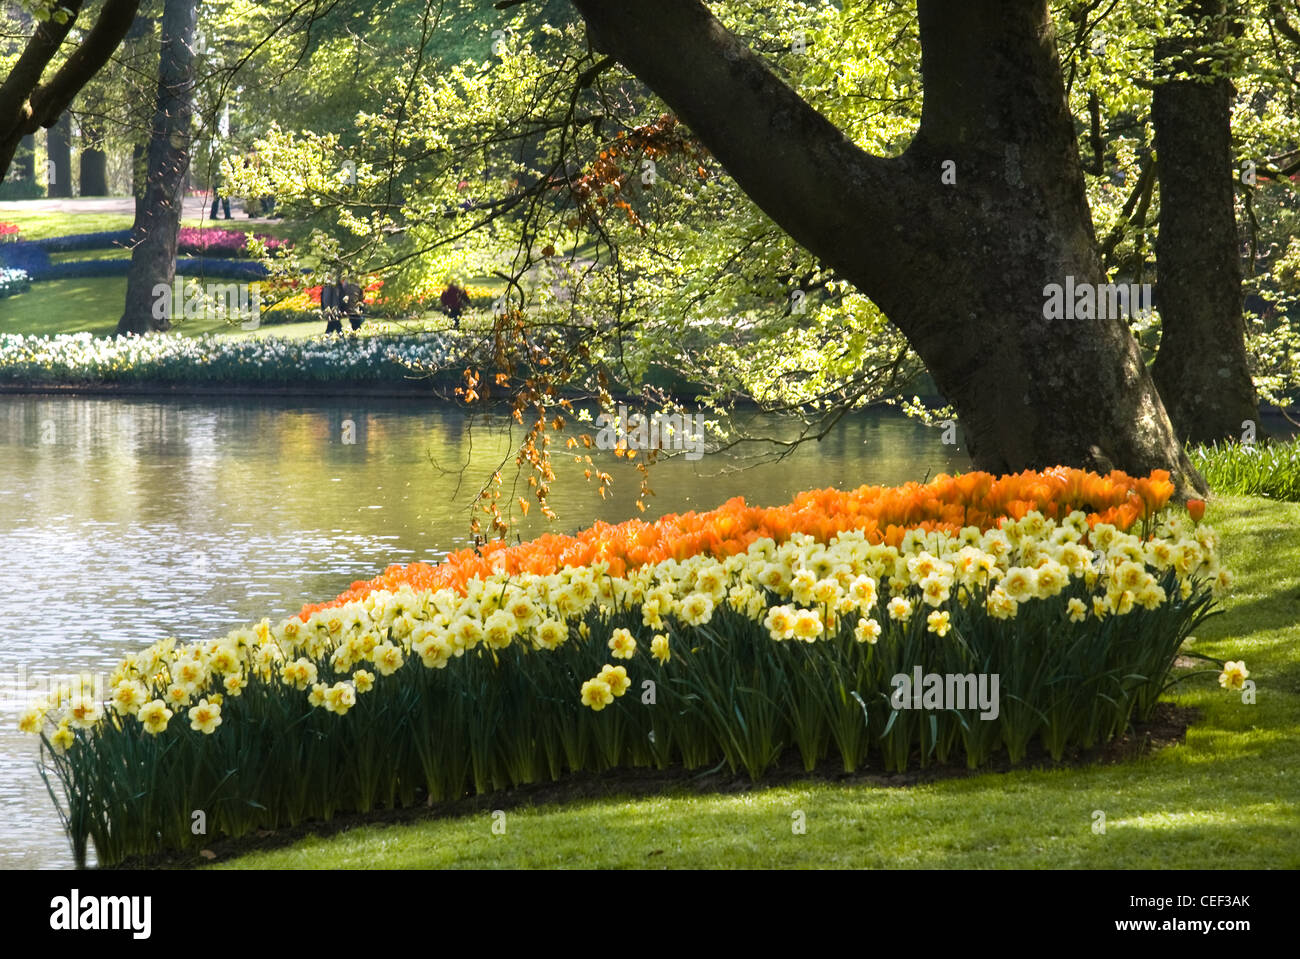 Pond In Park With Arrangement Of Tulips And Daffodils